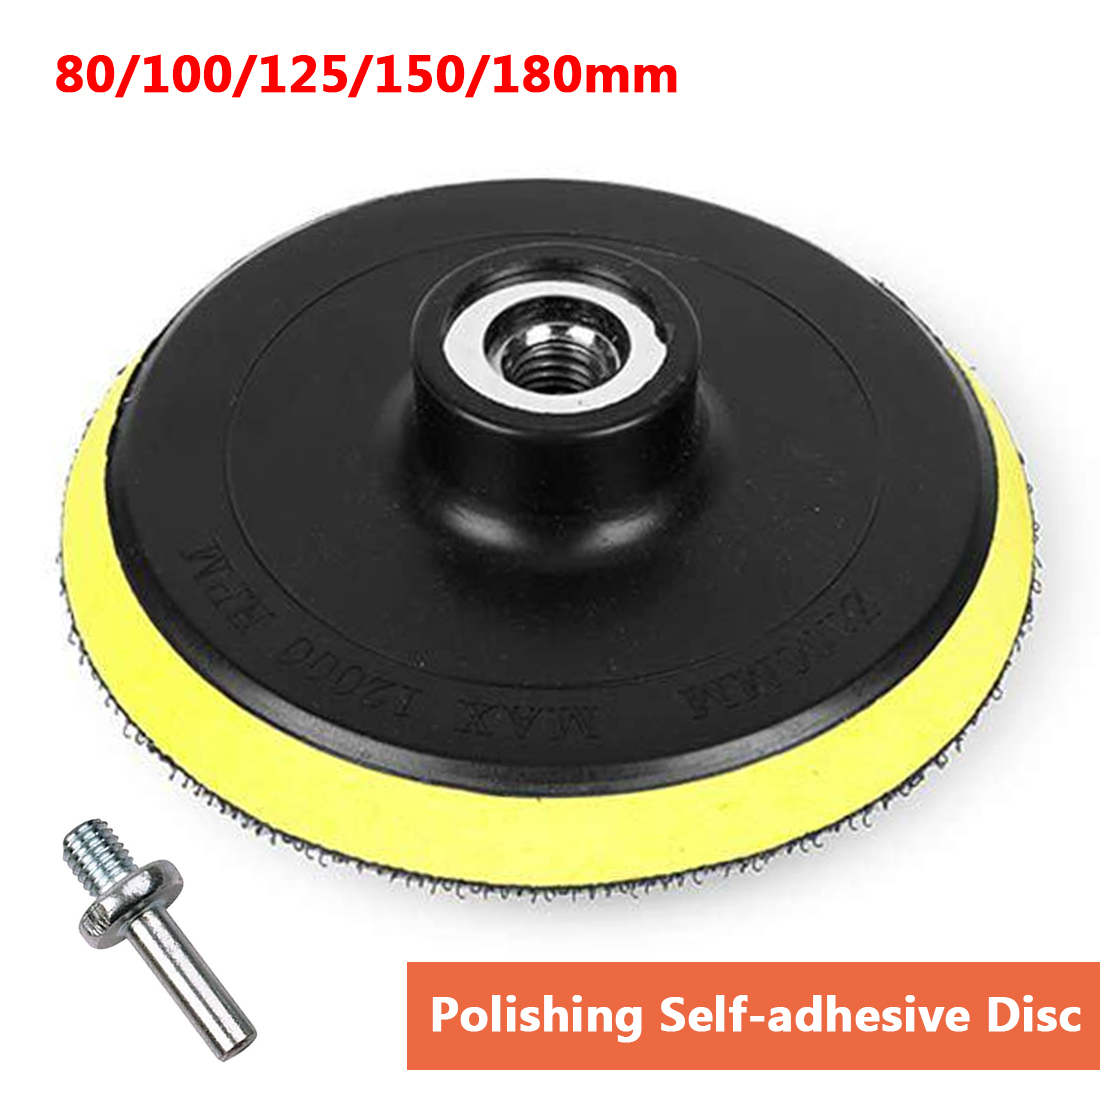 Abrasive Tools Devoted 1pc Polishing Self-adhesive Disc Polishing Sandpaper Sheet Adhesive Disc Chuck Angle Grinder Sticky Plate For Car